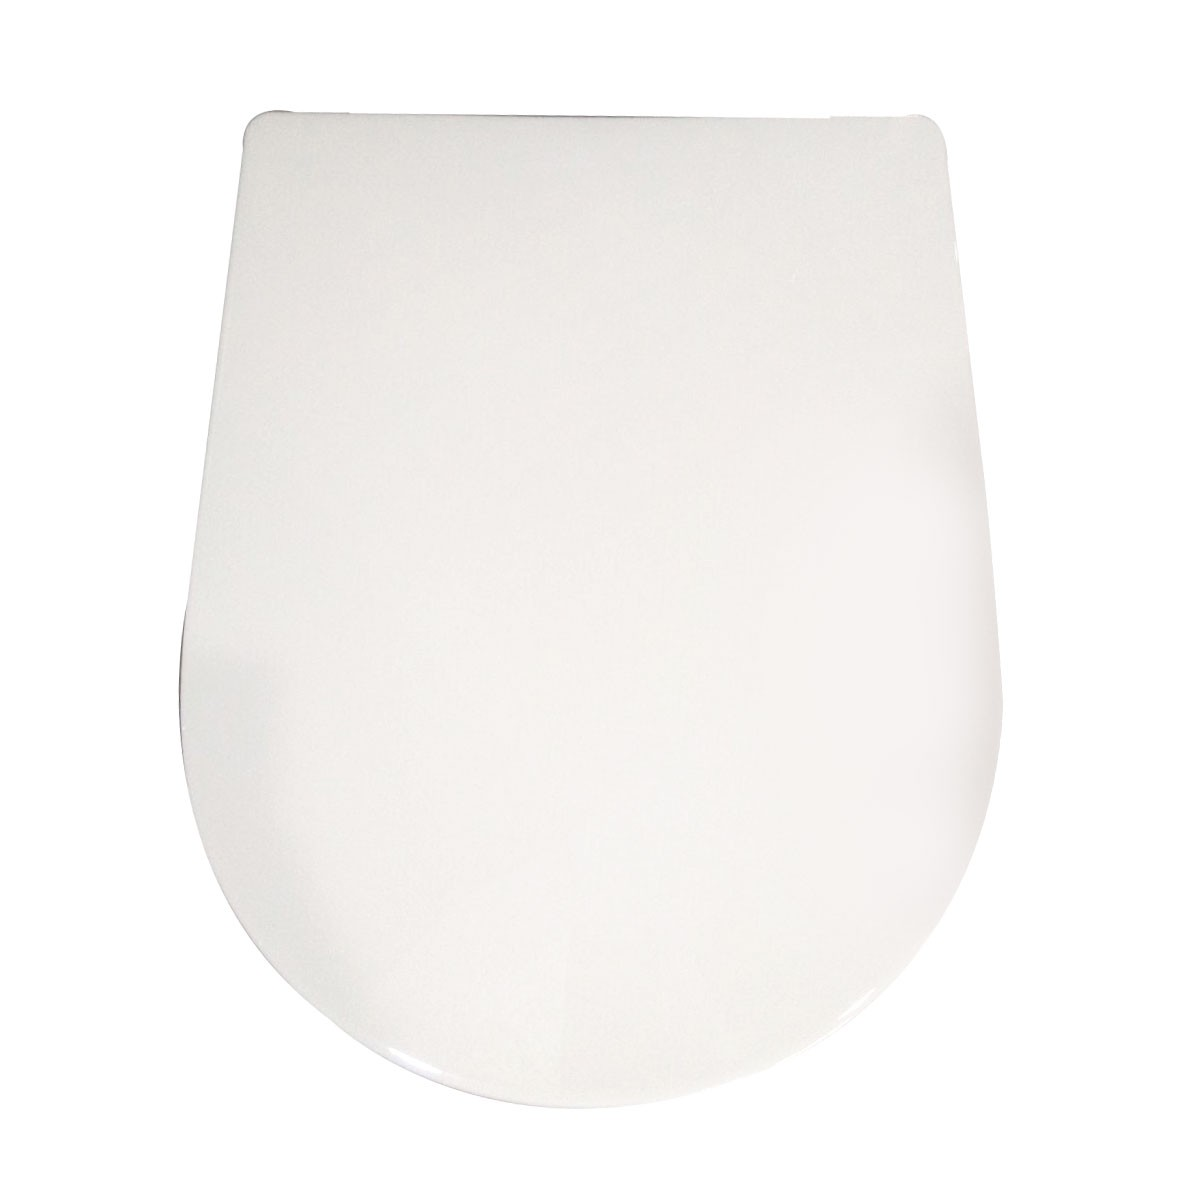 PP White Round-front Soft Close Toilet Seat with Cover (DK-CL-010)